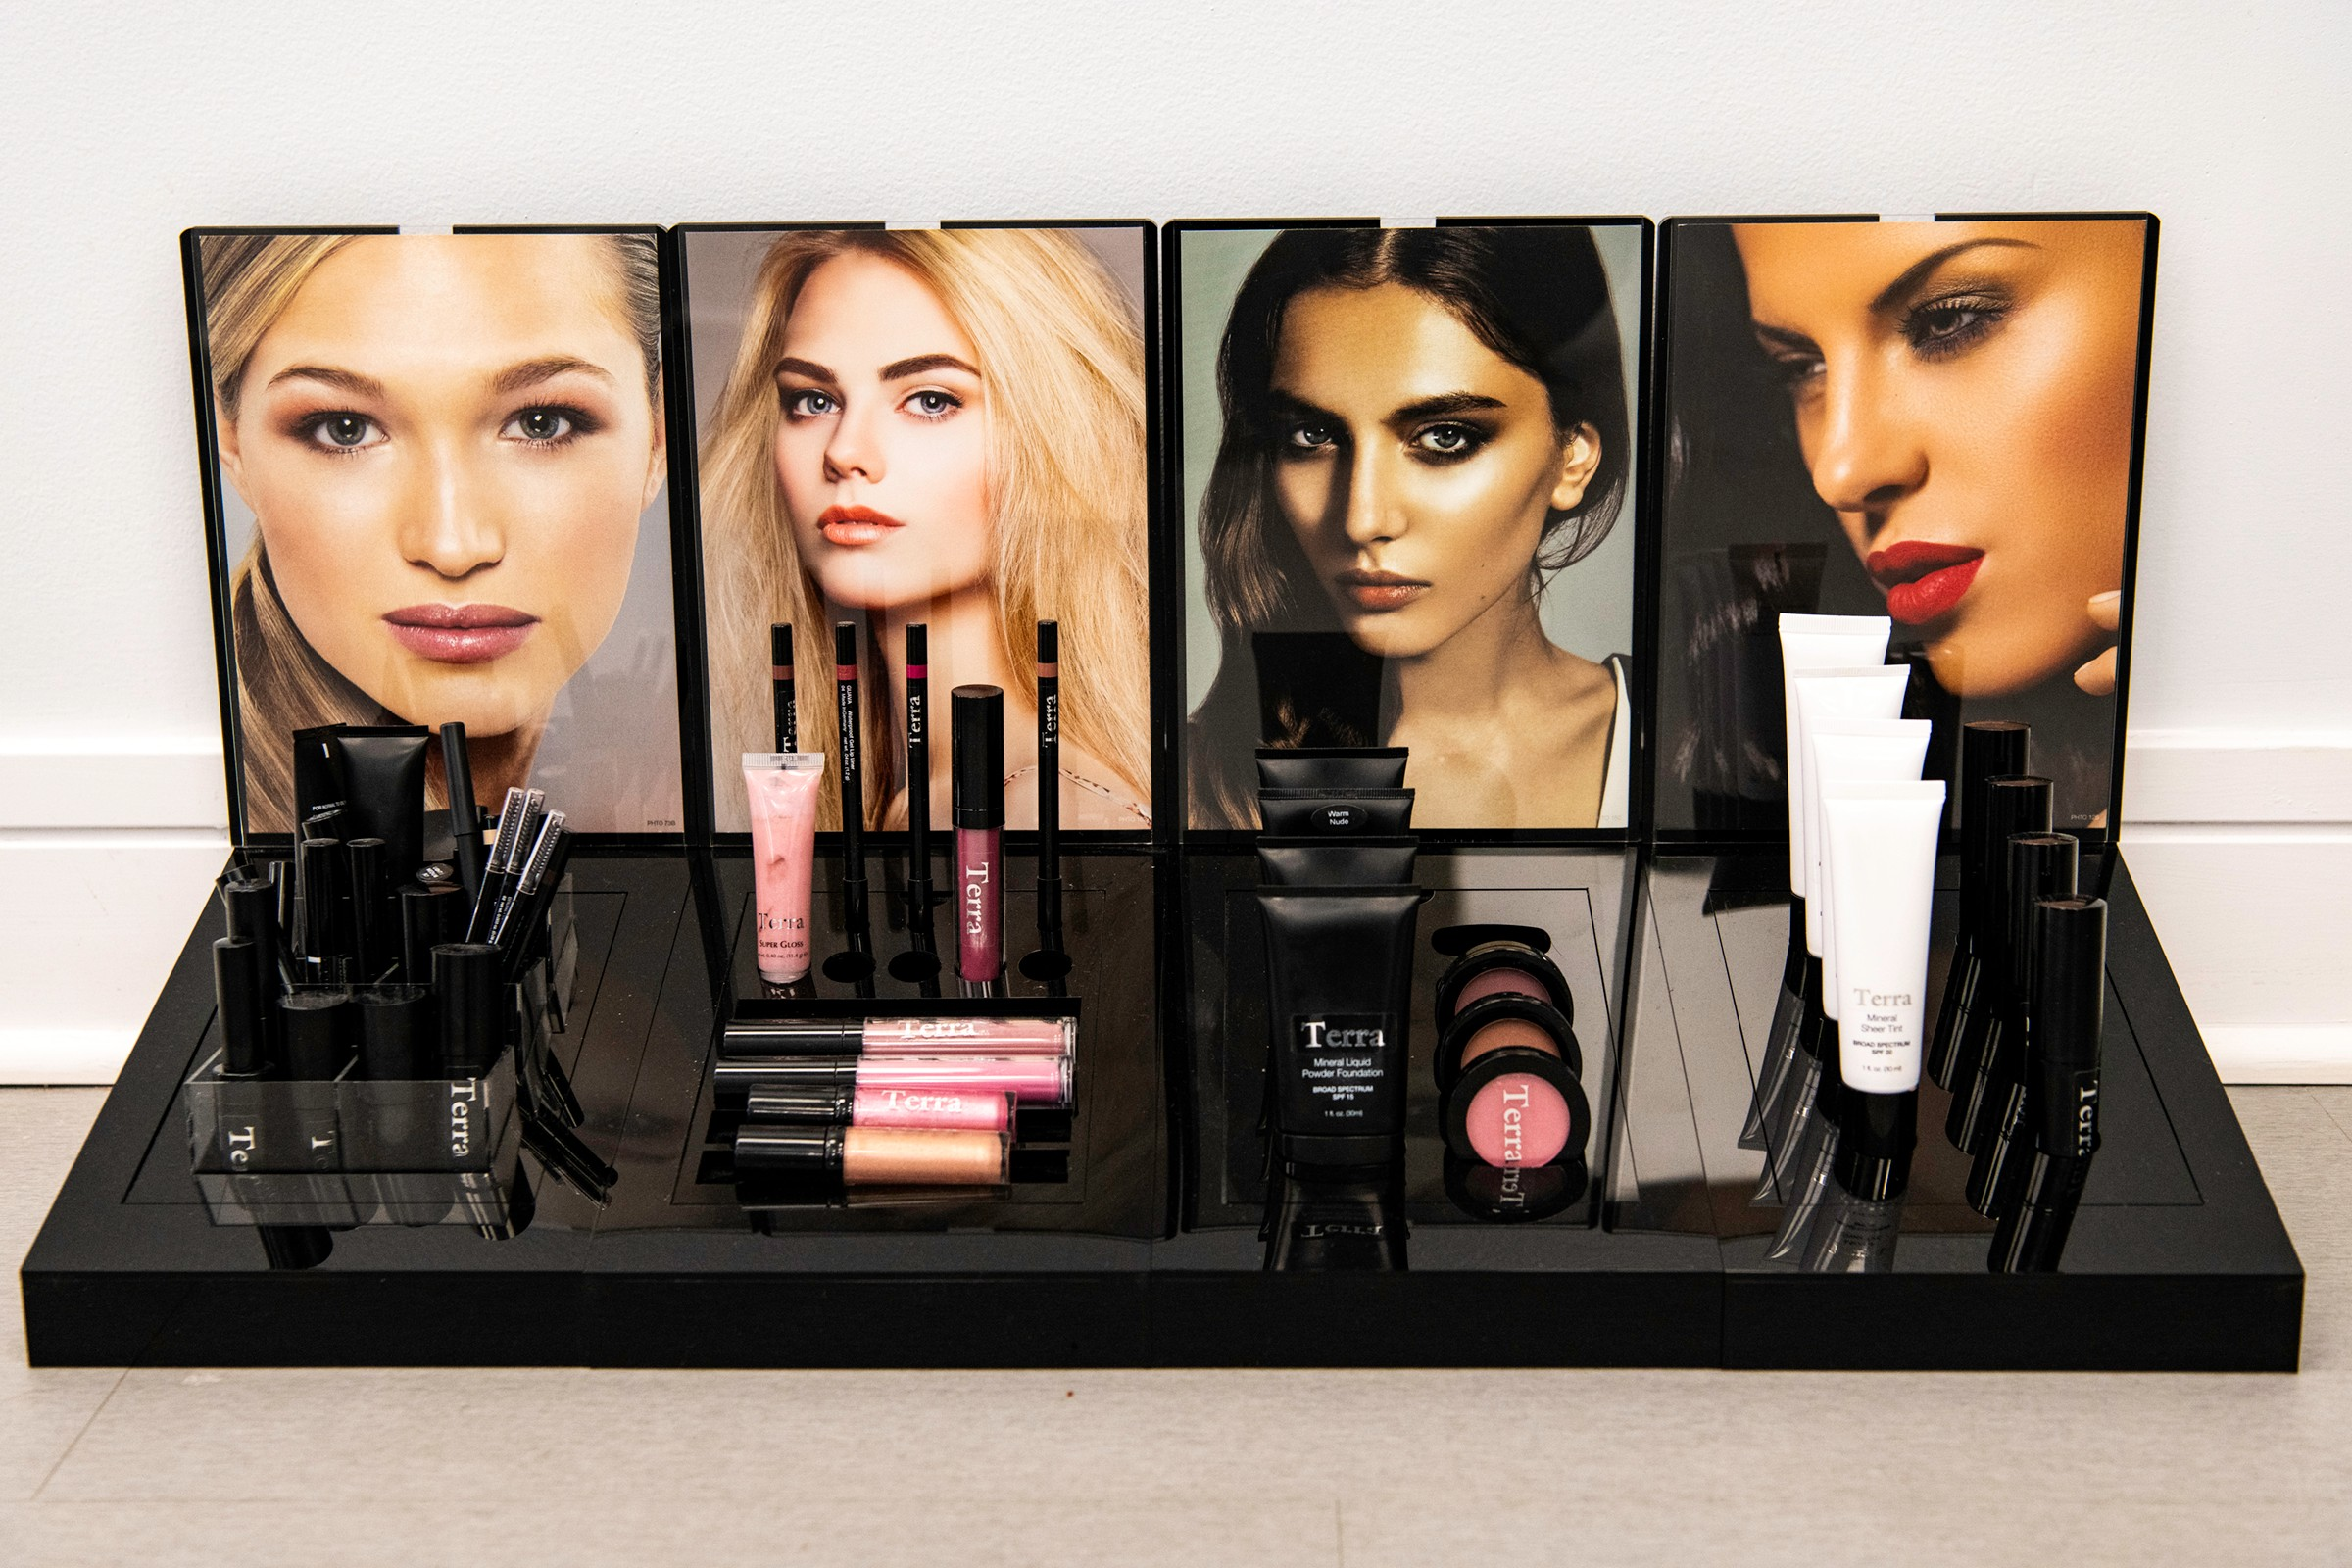 terra northbrook salon make up station.jpg